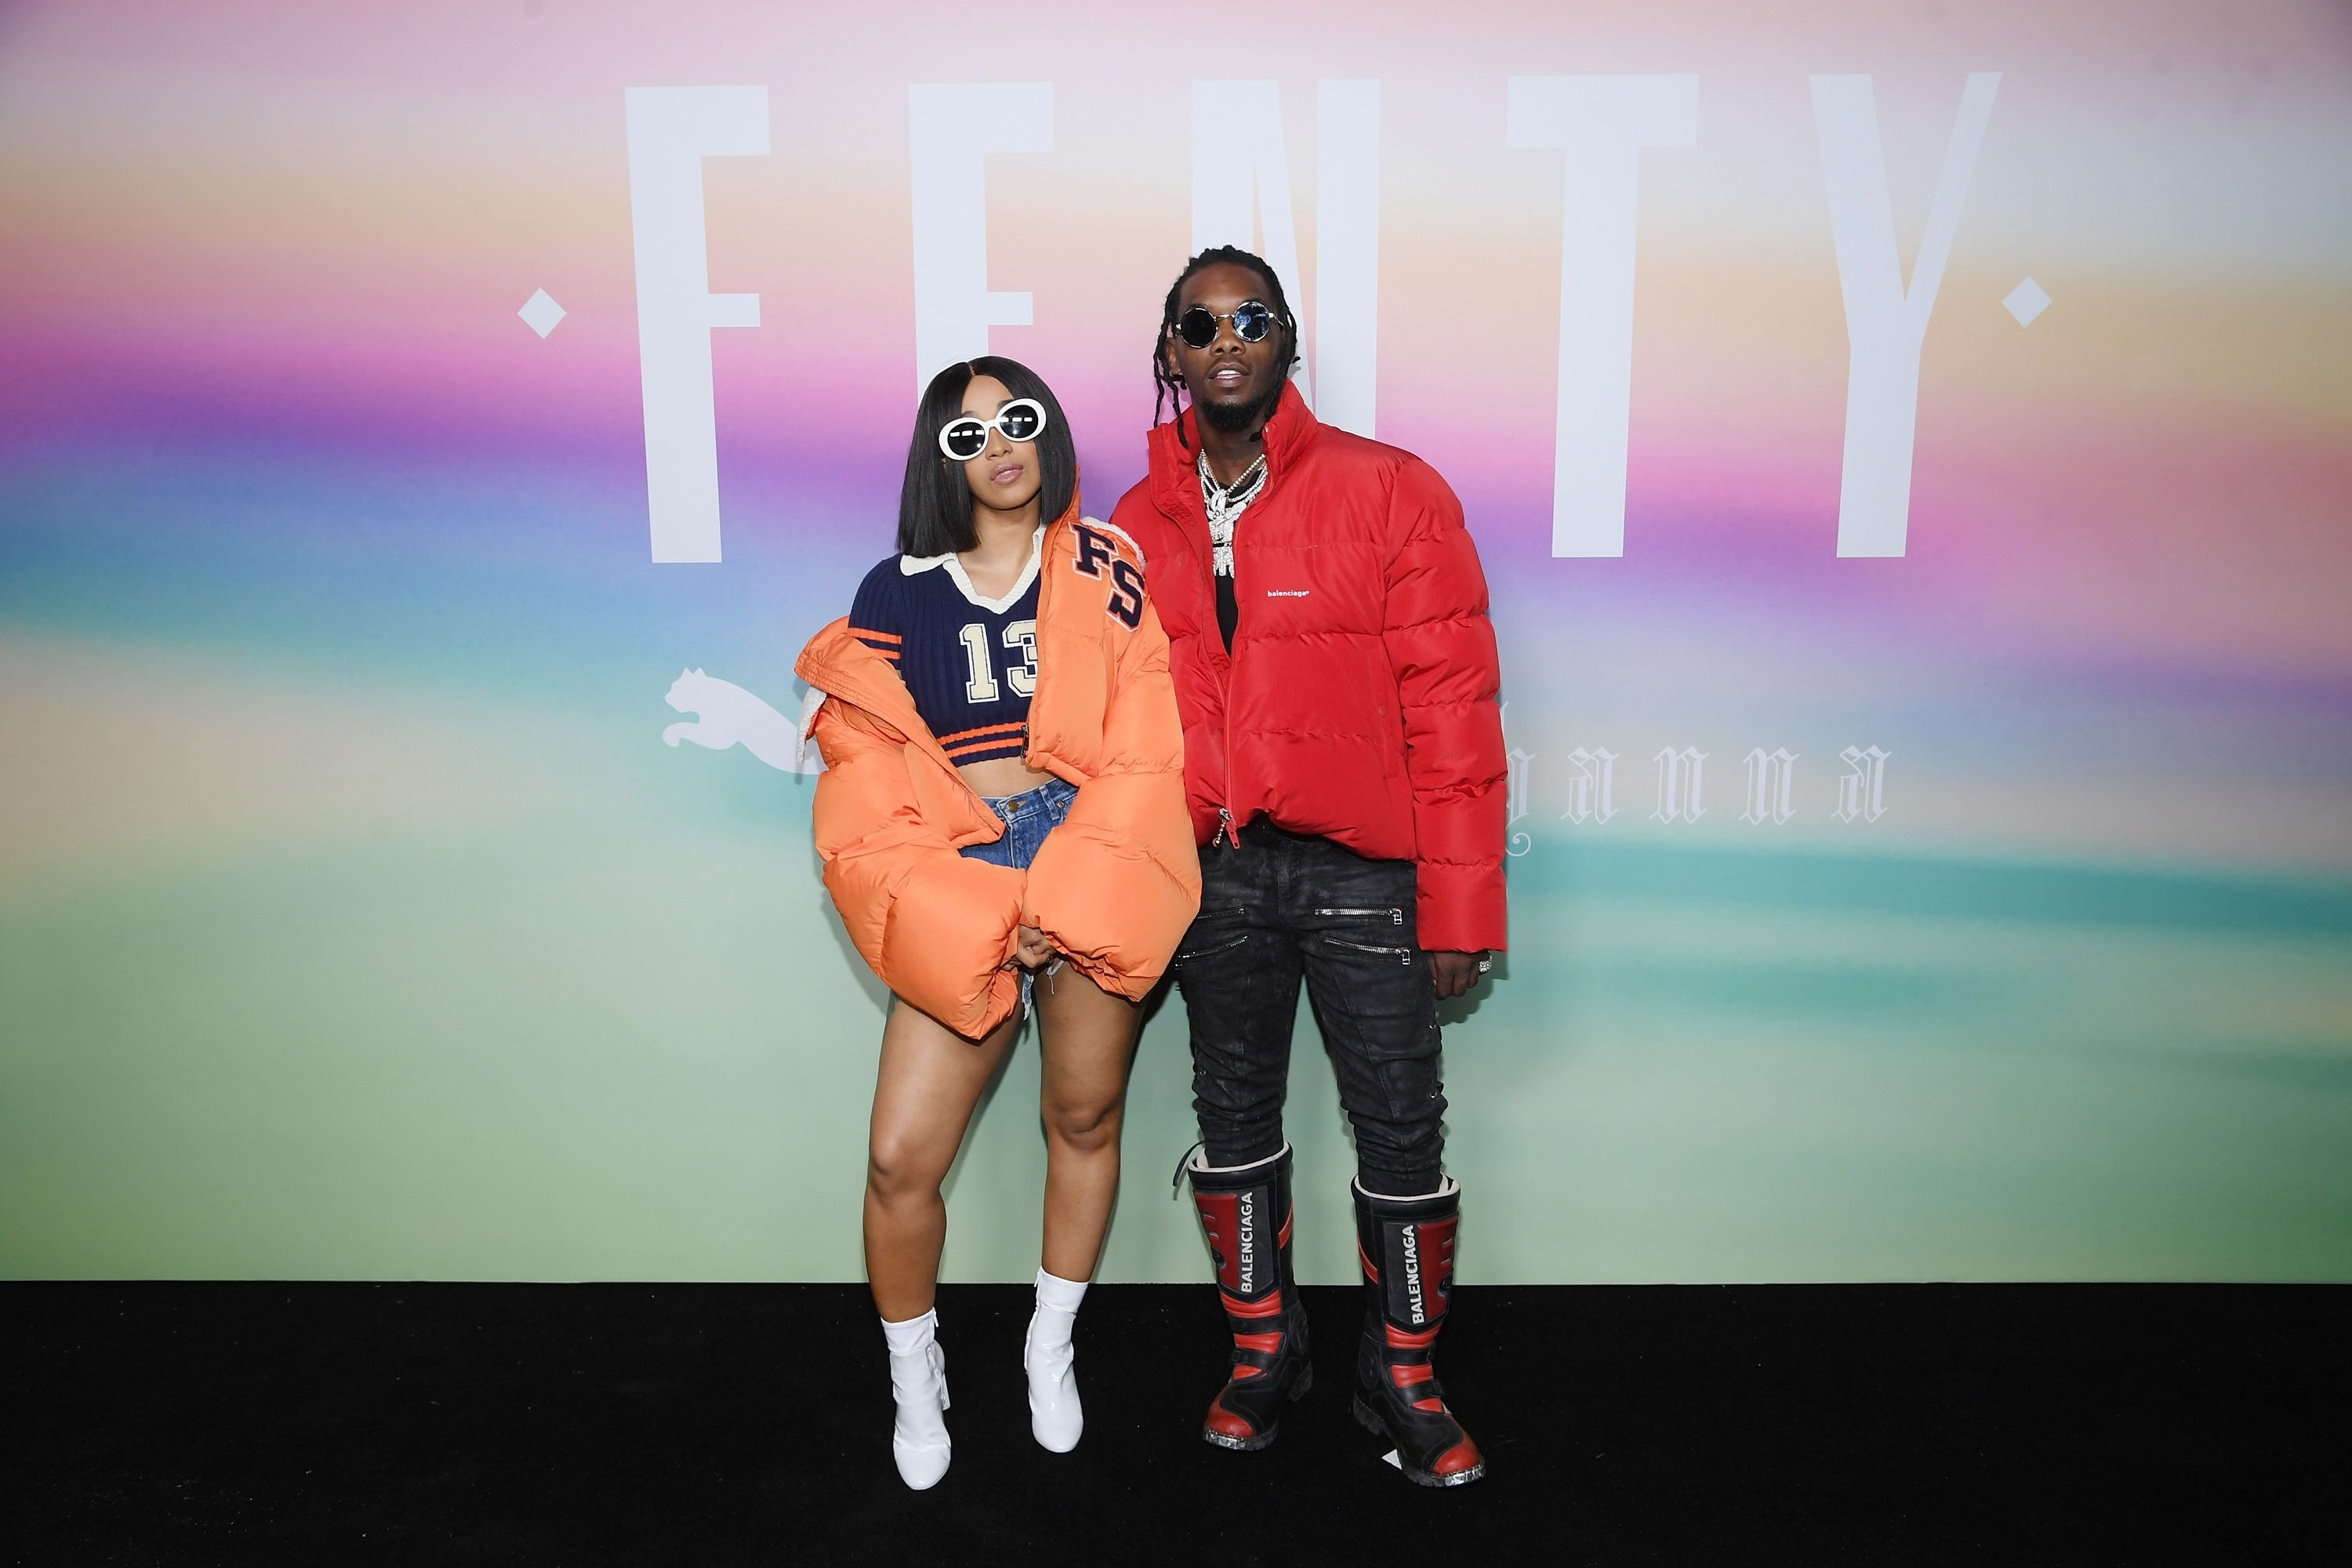 Offset and Cardi B attending the Fenty Puma by Rihanna event in September 10, 2017 in New York | Source: Getty Images